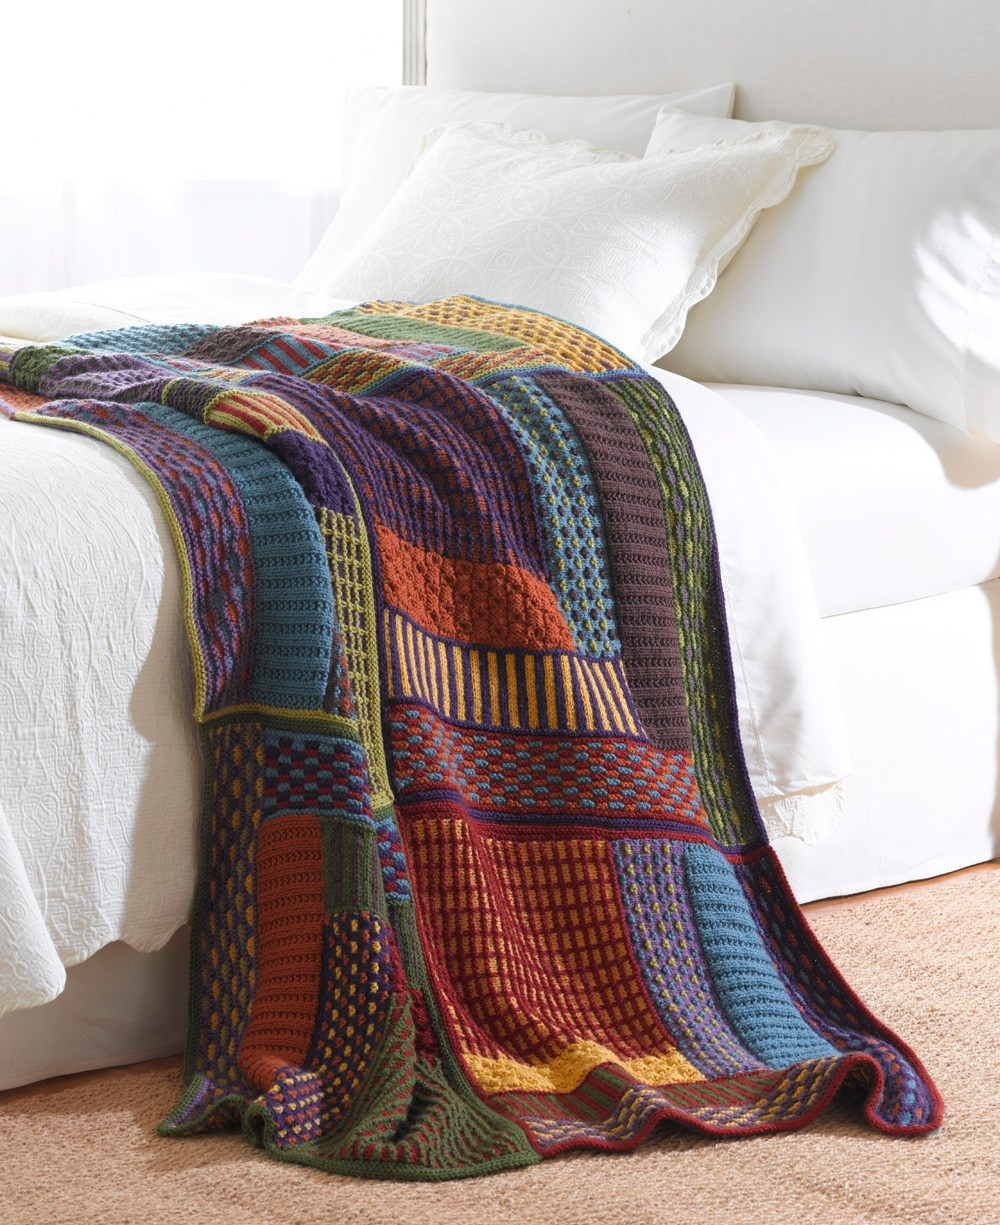 Free Afghan Knitting Patterns New Sampler Knitting Patterns for Afghans Accessories and Of Adorable 42 Pictures Free Afghan Knitting Patterns